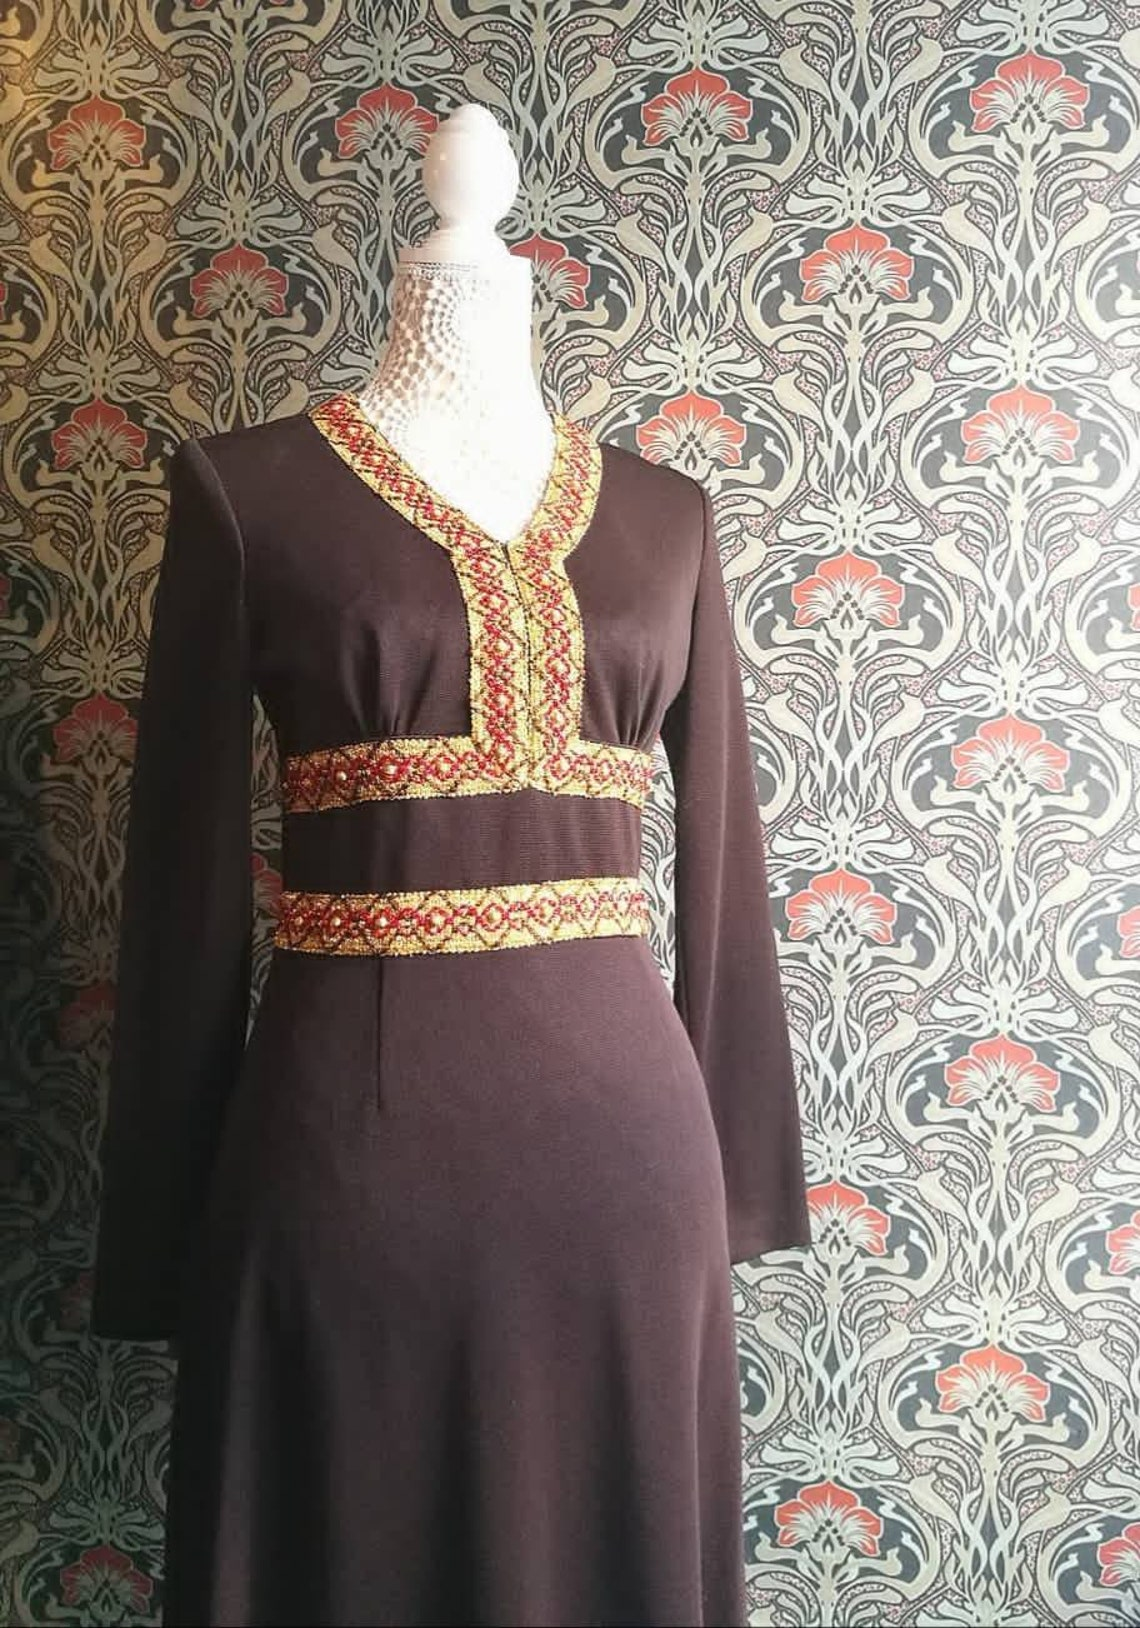 Lovely vtg 60s/70s brown maxi dress with beautiful gold & red